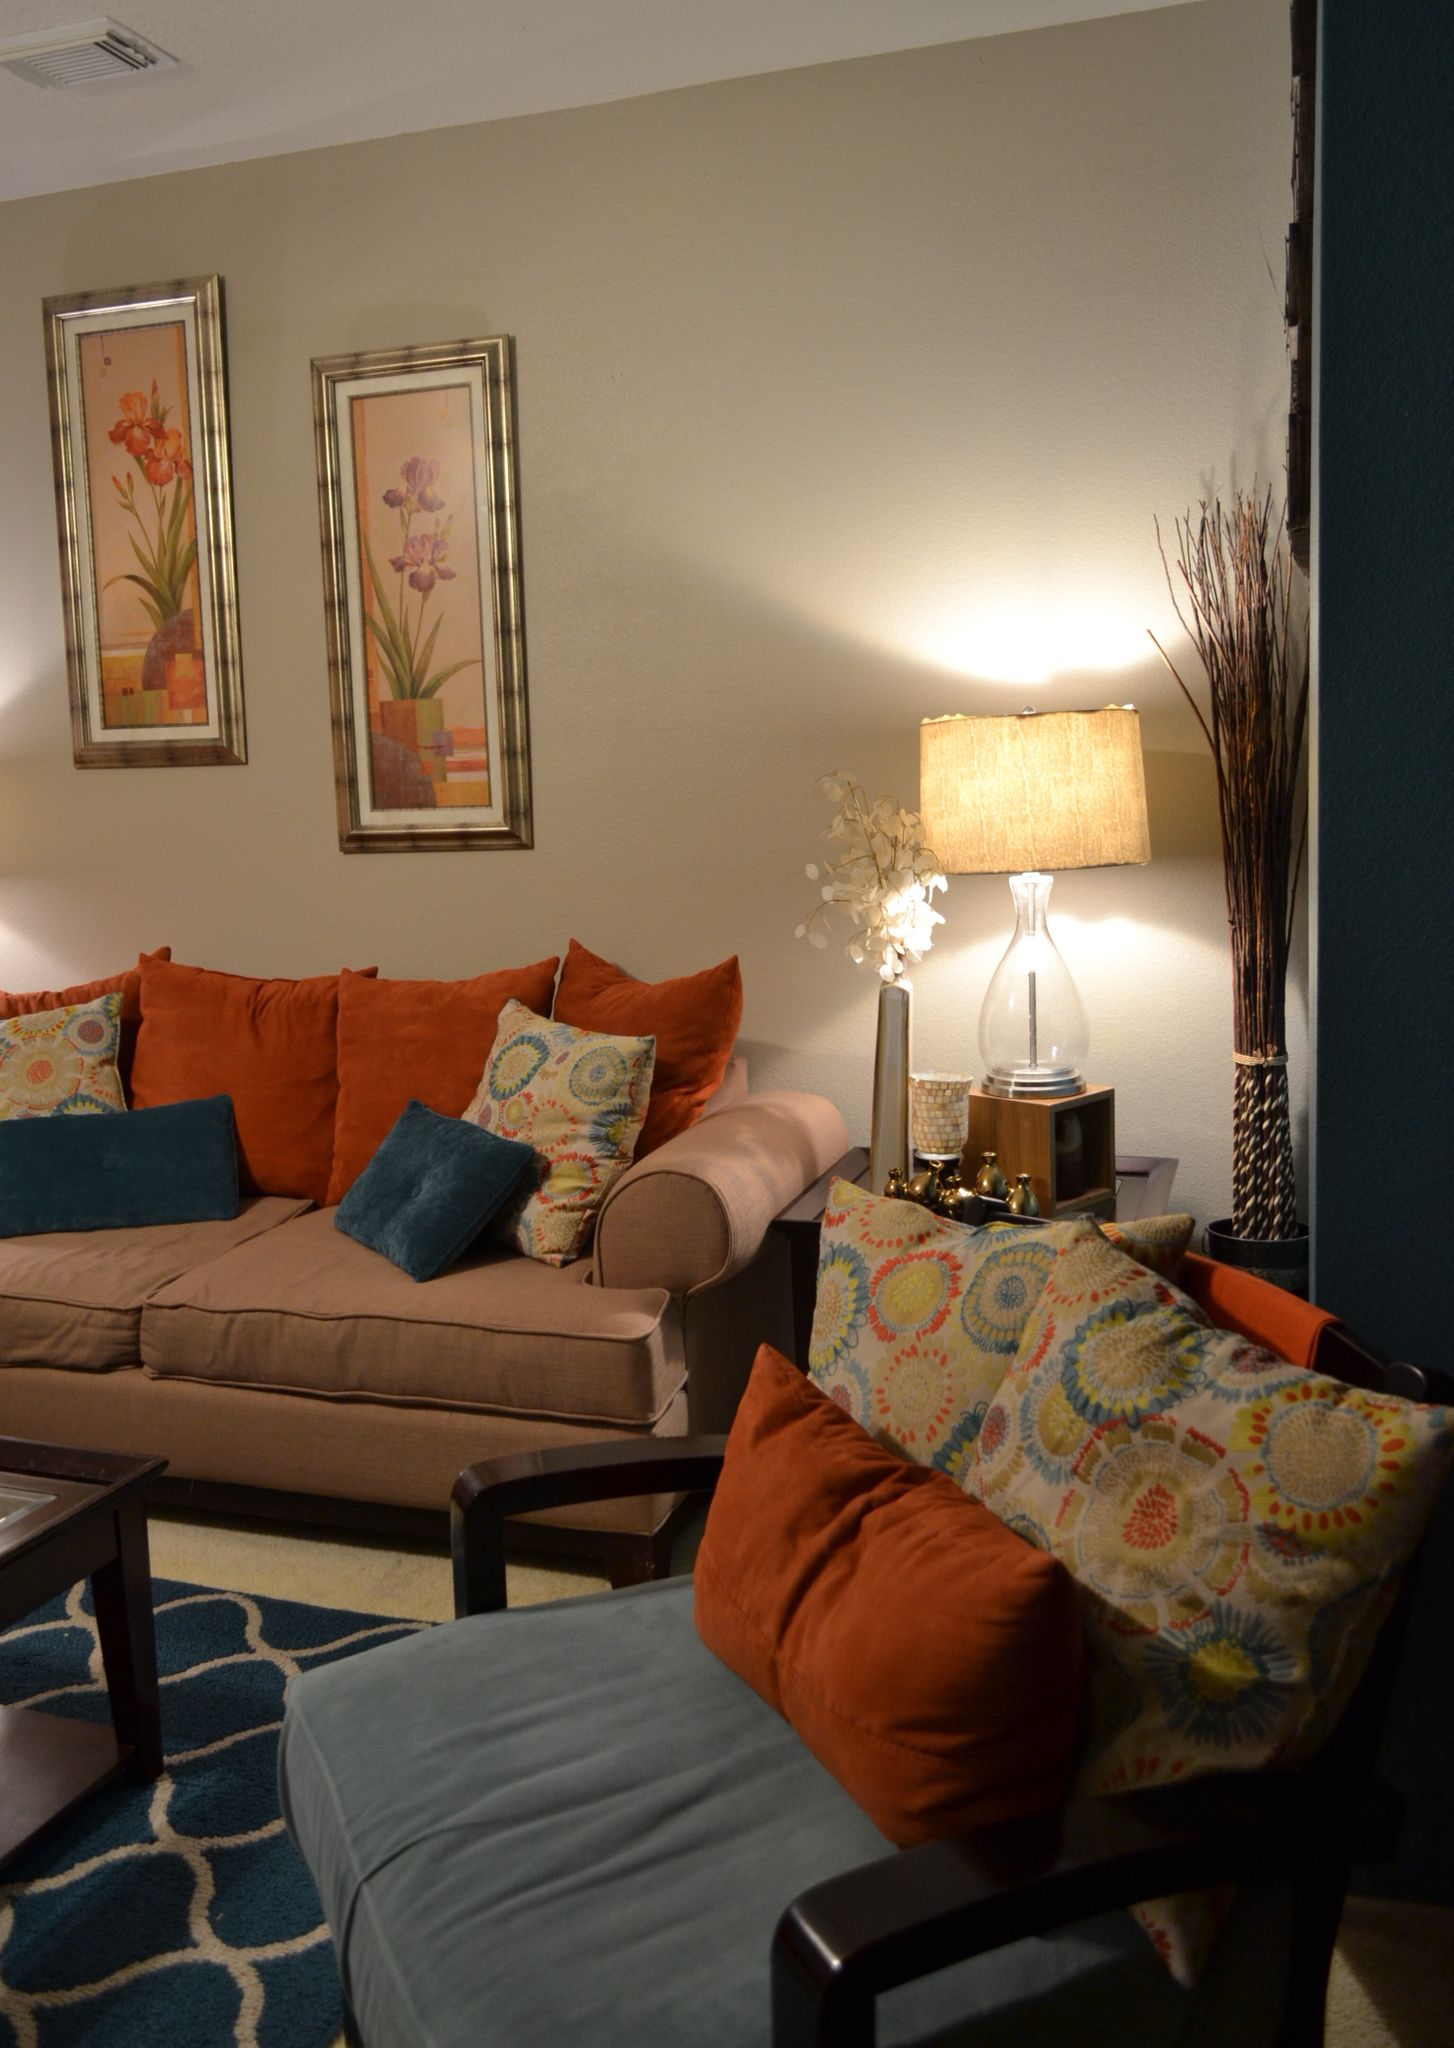 Accent Wall Rugs Coffee Table Pillows Teal Orange Living Room Living Room Orange Teal And Orange Living Room Decor Living Room Color Schemes